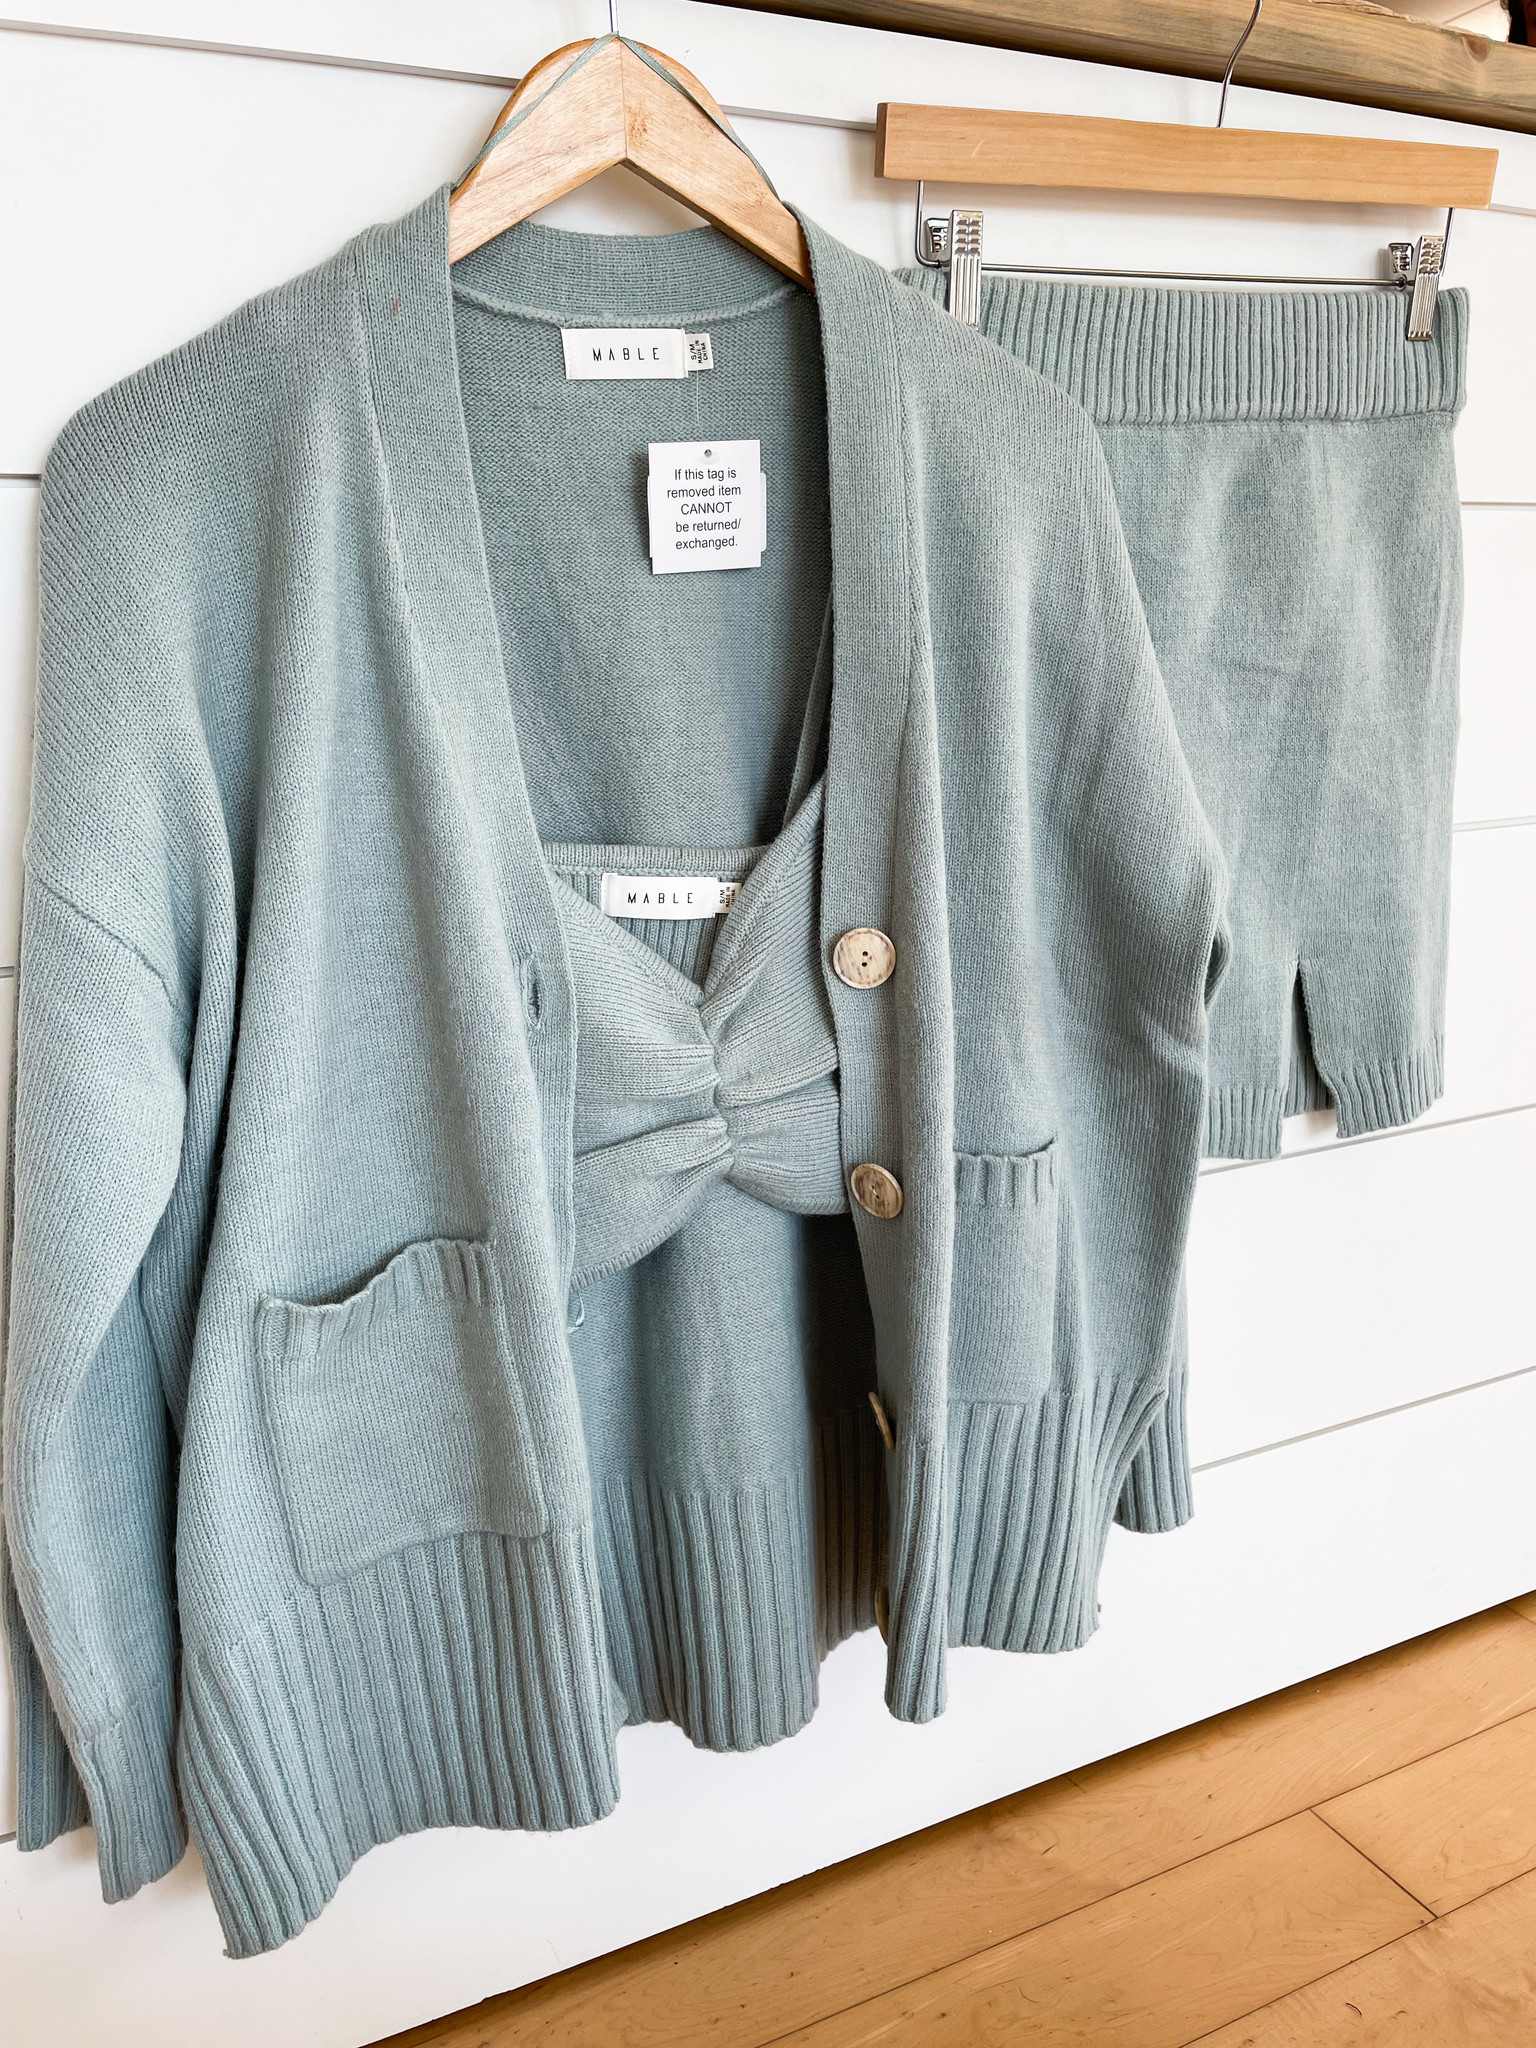 Mable Blue 3 Piece Sweater Set